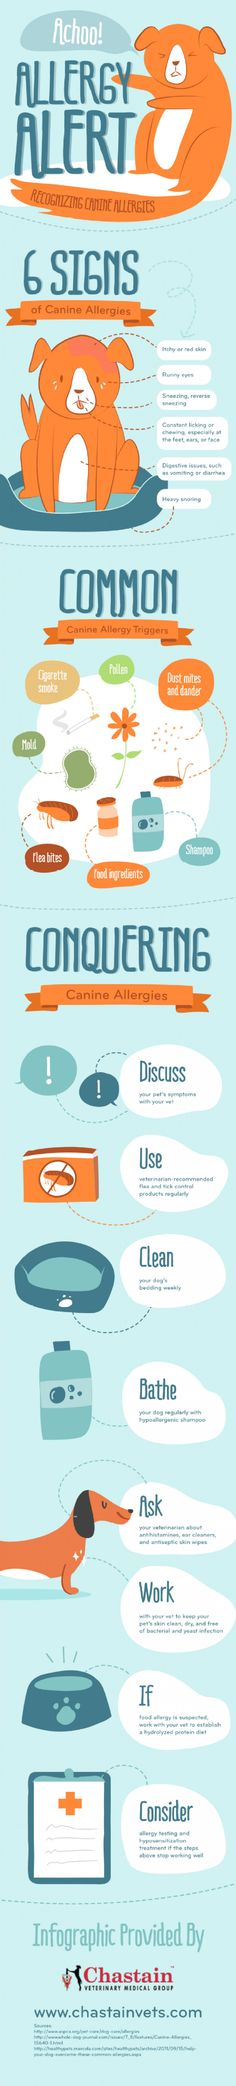 Recognizing Canine Allergies - The Lazy Pit Bull http://www.thelazypitbull.com/2014/06/recognizing-canine-allergies/